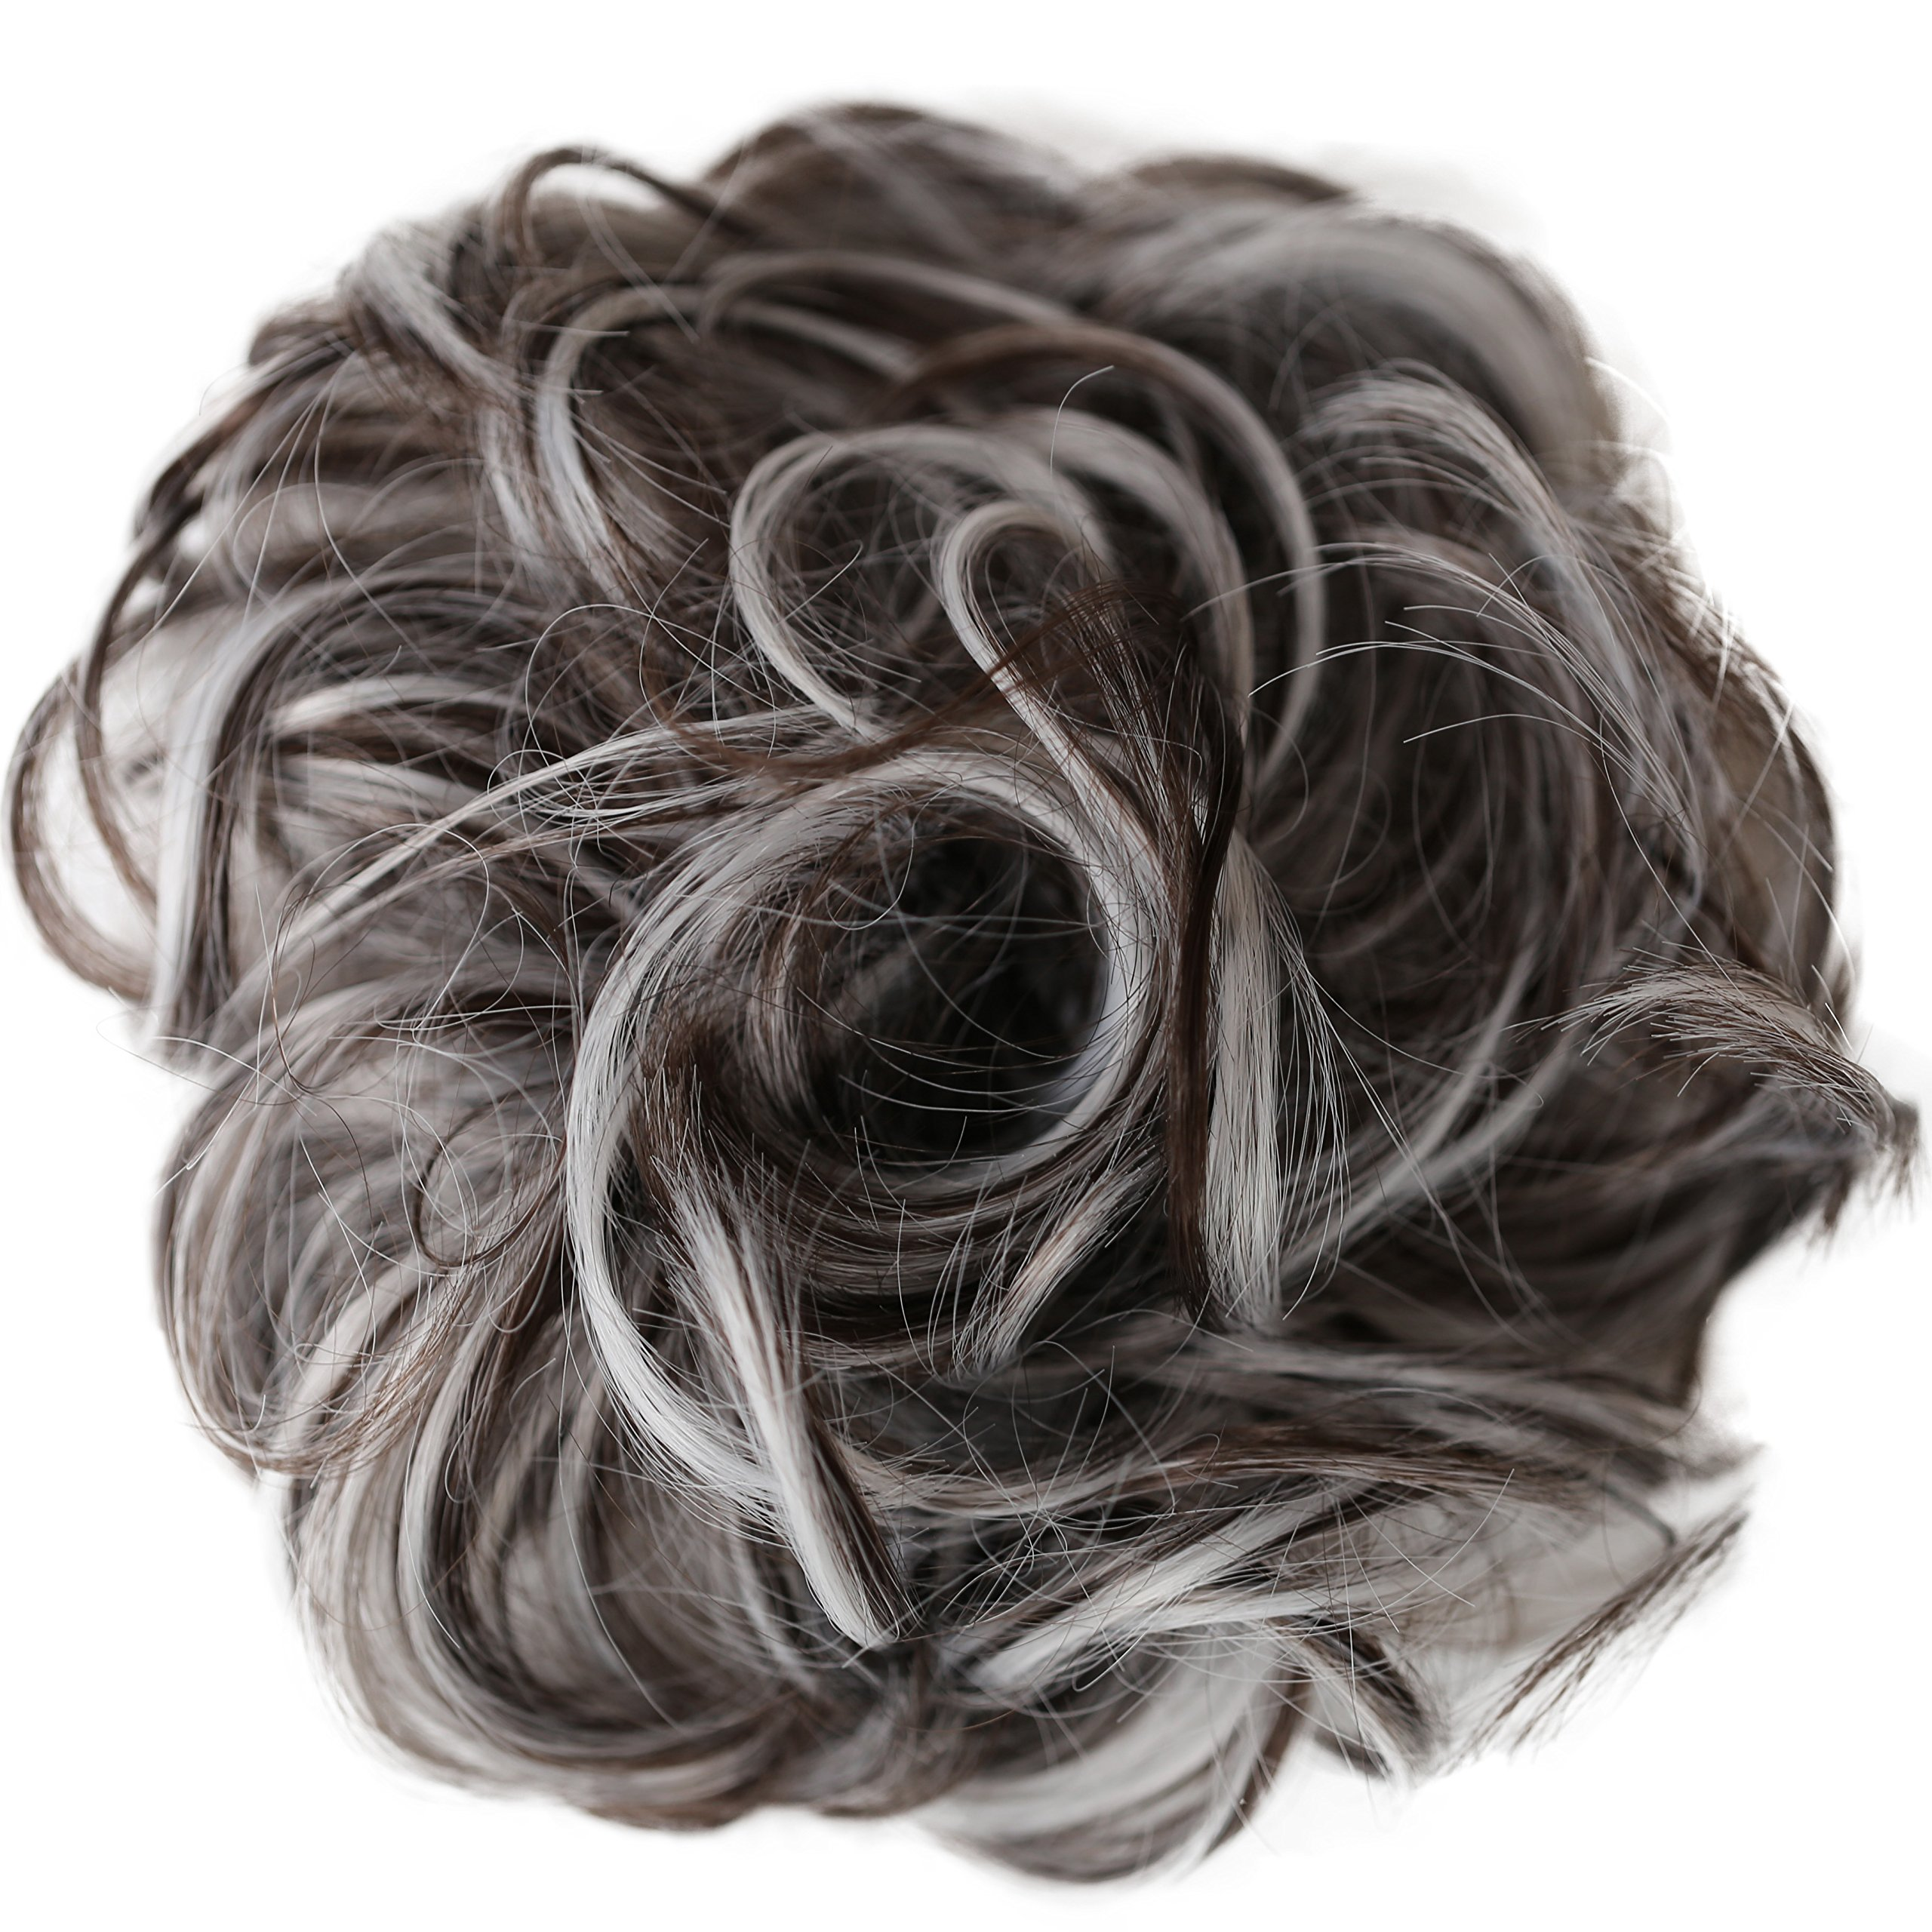 PRETTYSHOP Hairpiece Hair Rubber Scrunchie Scrunchy Updos VOLUMINOUS Curly Messy Bun brown gray mix # 10H1001B G25E by Prettyshop Hairpiece